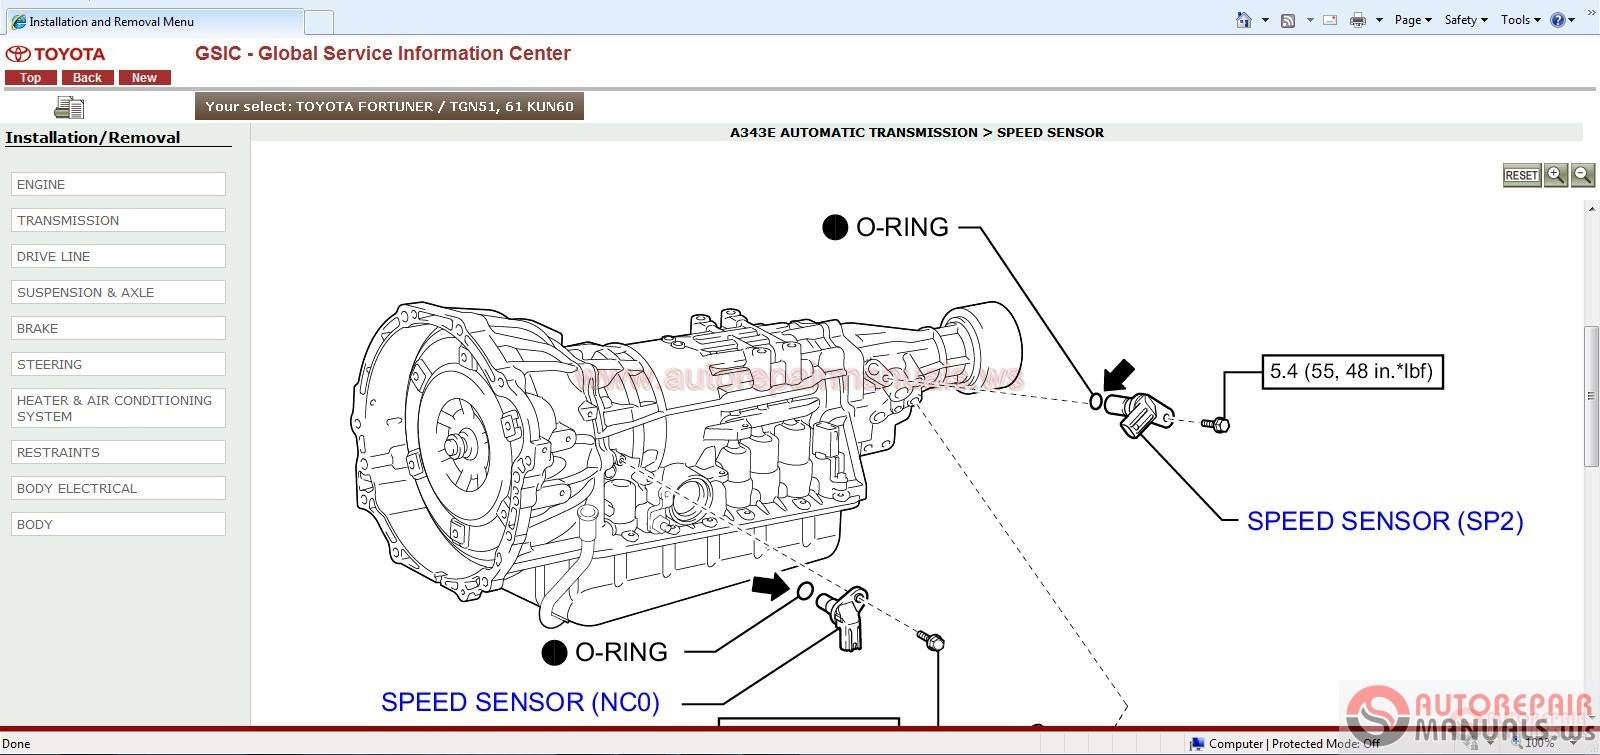 Toyota Gsic Repair Manual Wiring Diagram Body Repair